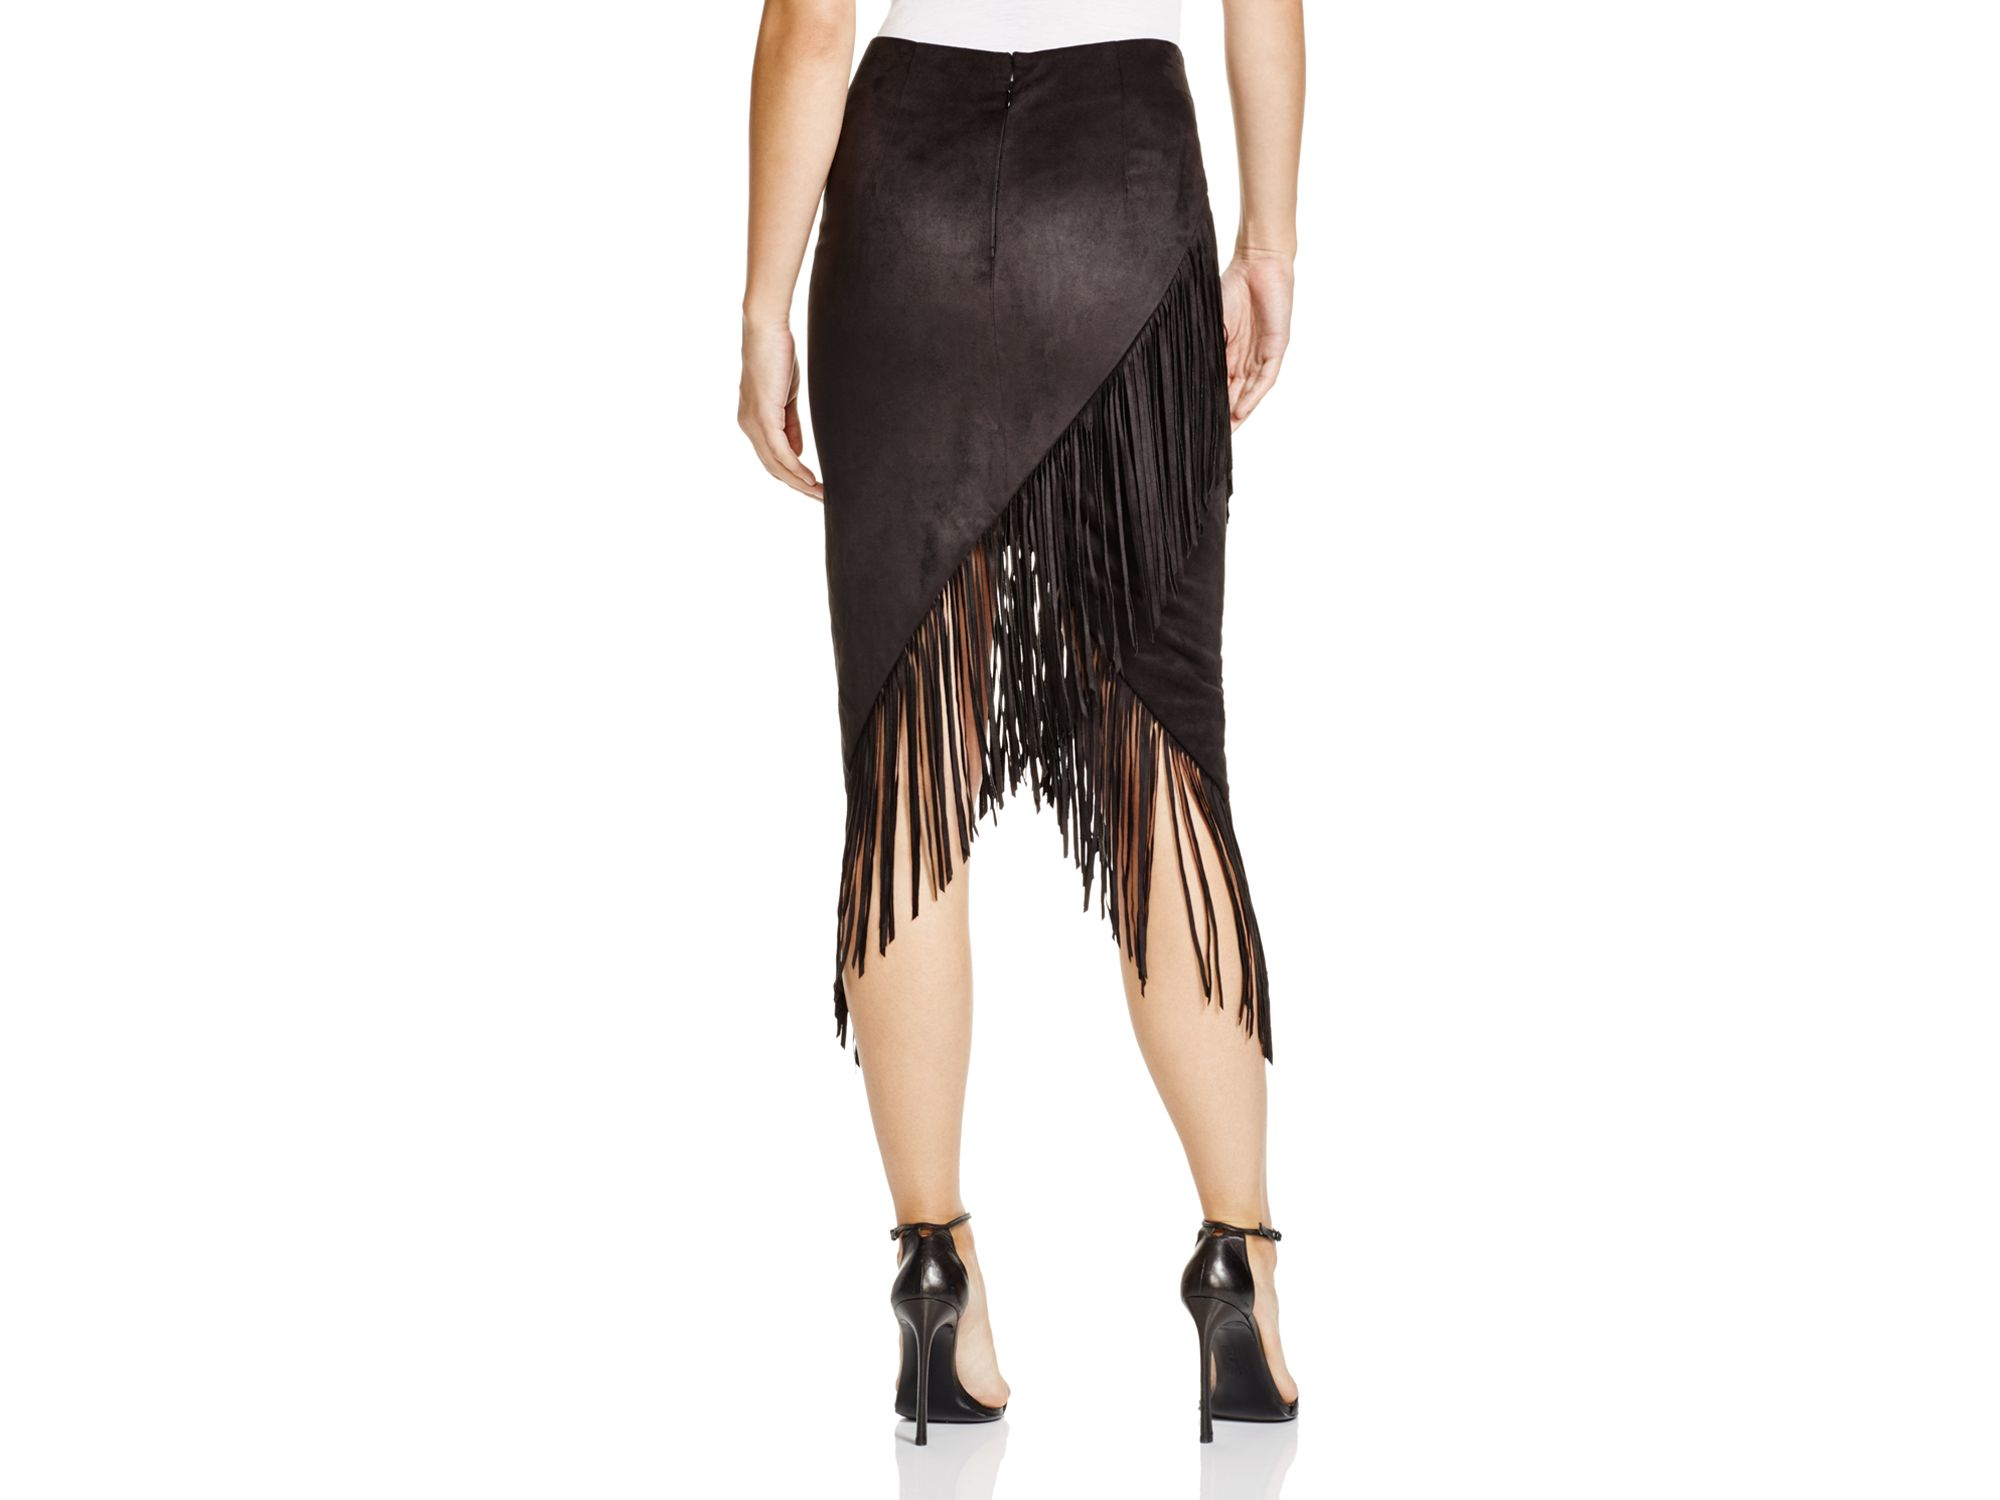 Olivaceous Faux Suede Fringed Skirt in Black | Lyst